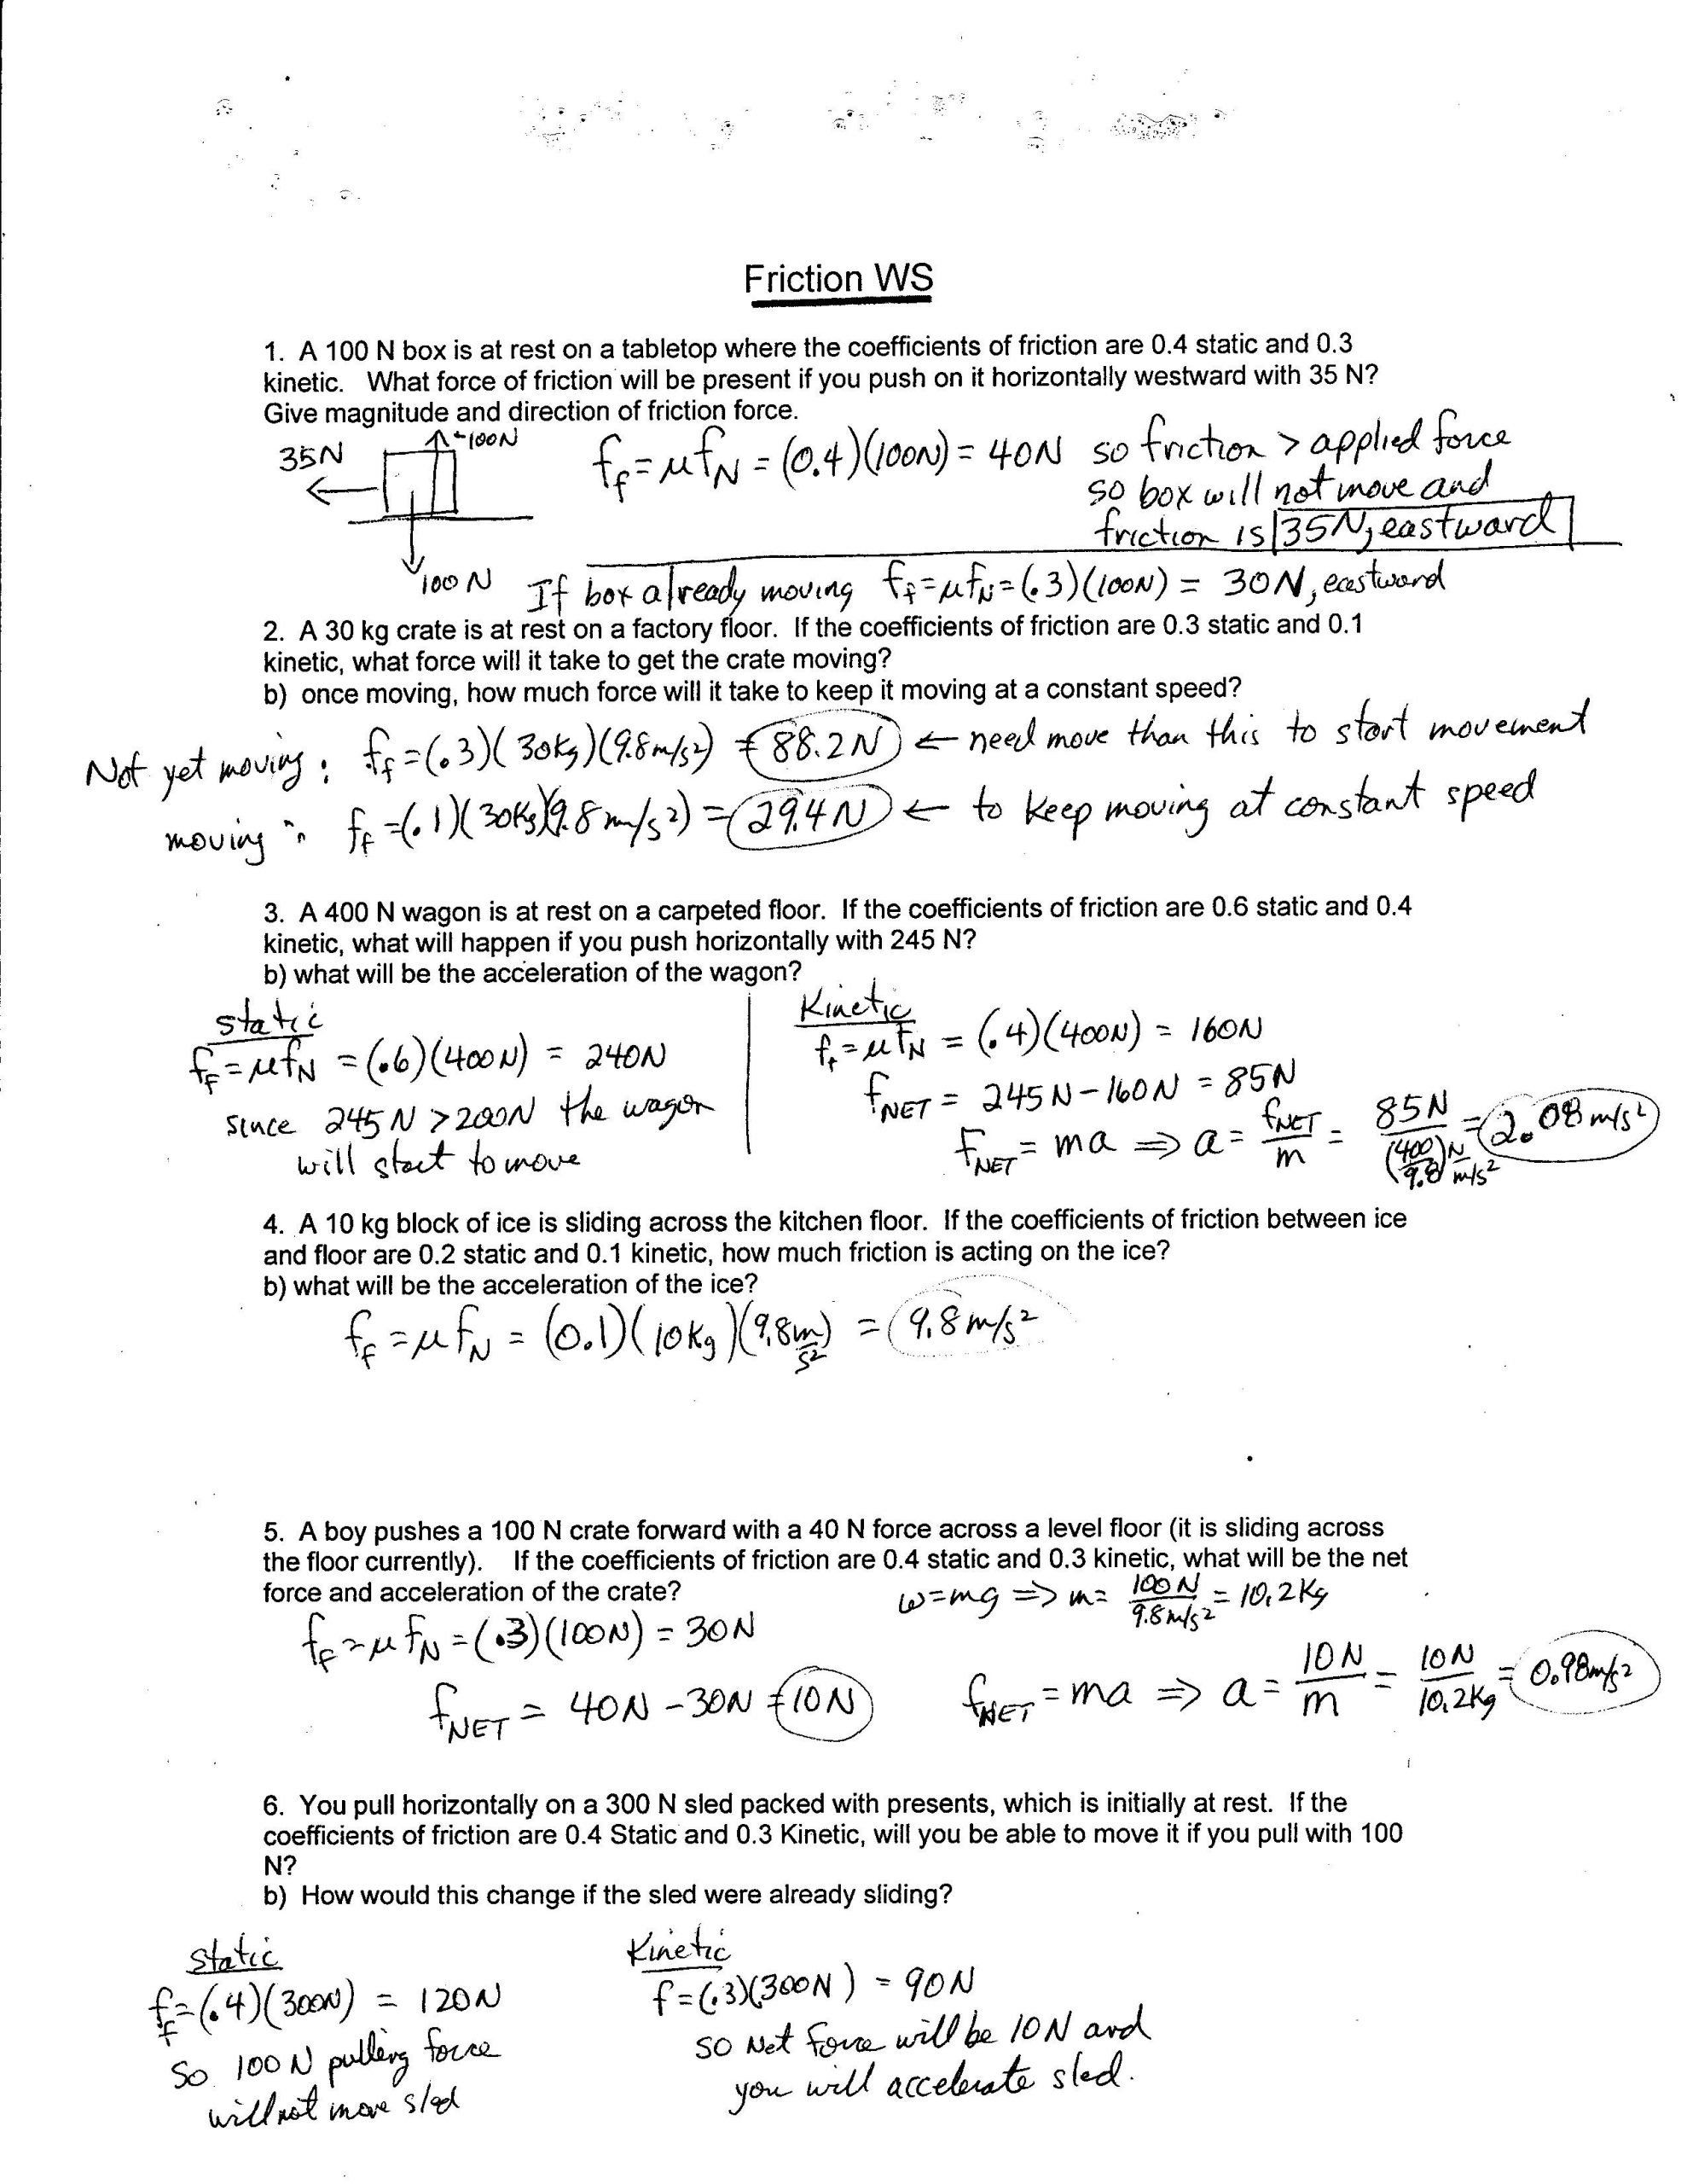 Which Law Worksheet Answers Physics 11 2017 Force Worksheets In 2020 Word Problem Worksheets Calculating Force Worksheets